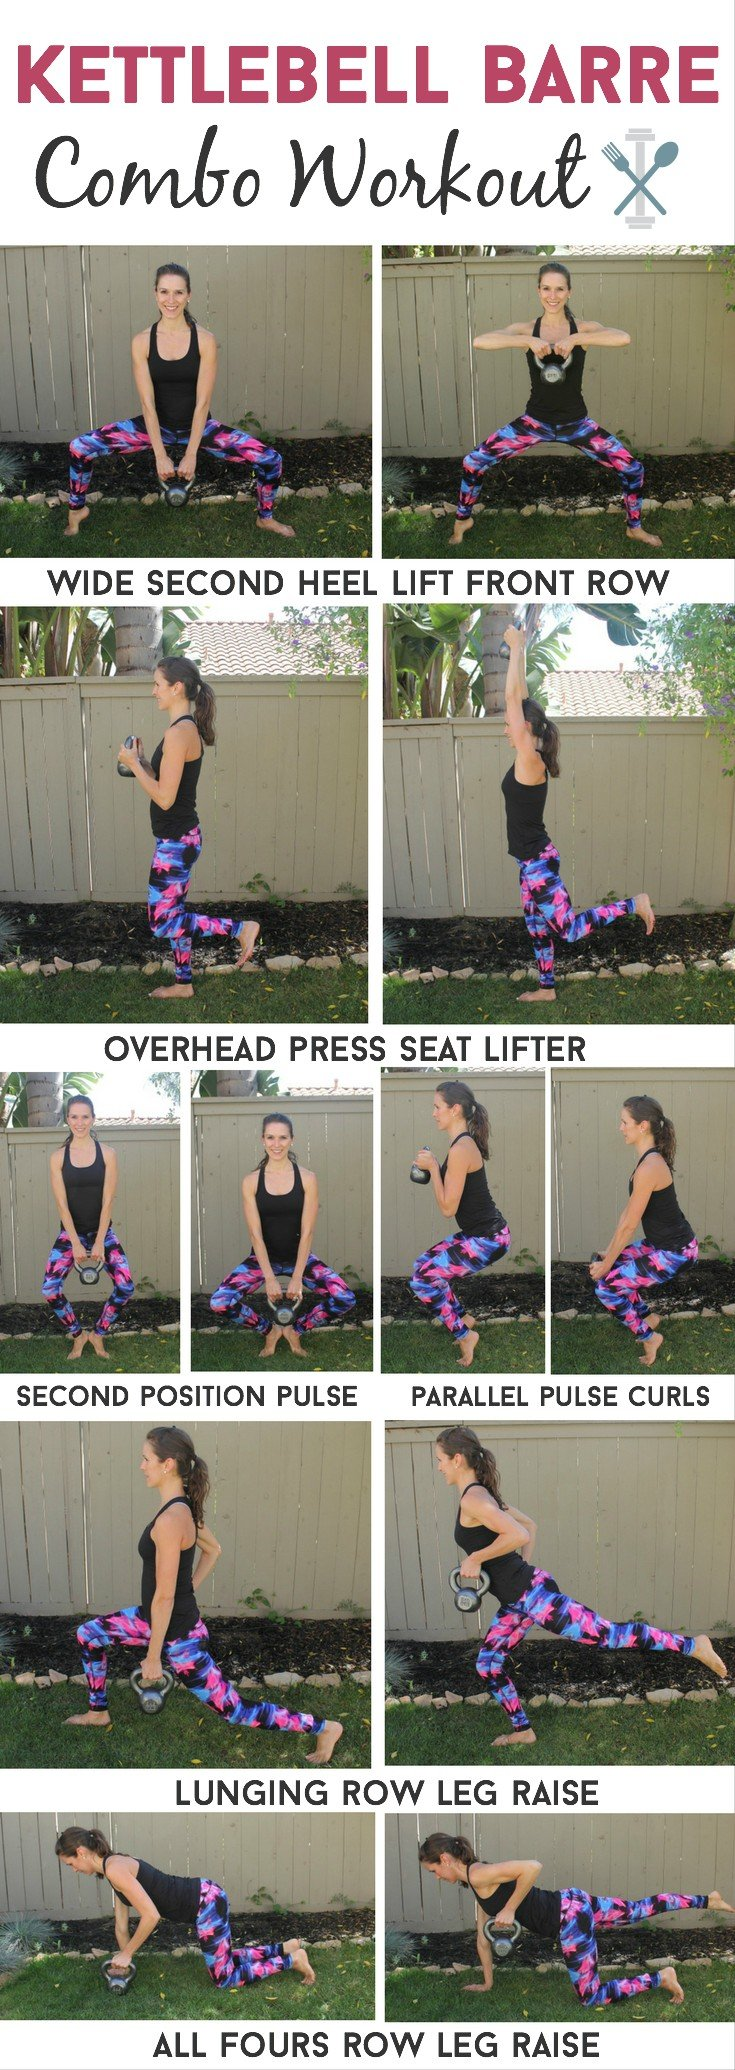 This workout is amazing, combining traditional barre moves to sculpt your butt and thighs, with powerful upper-body kettlebells moves.